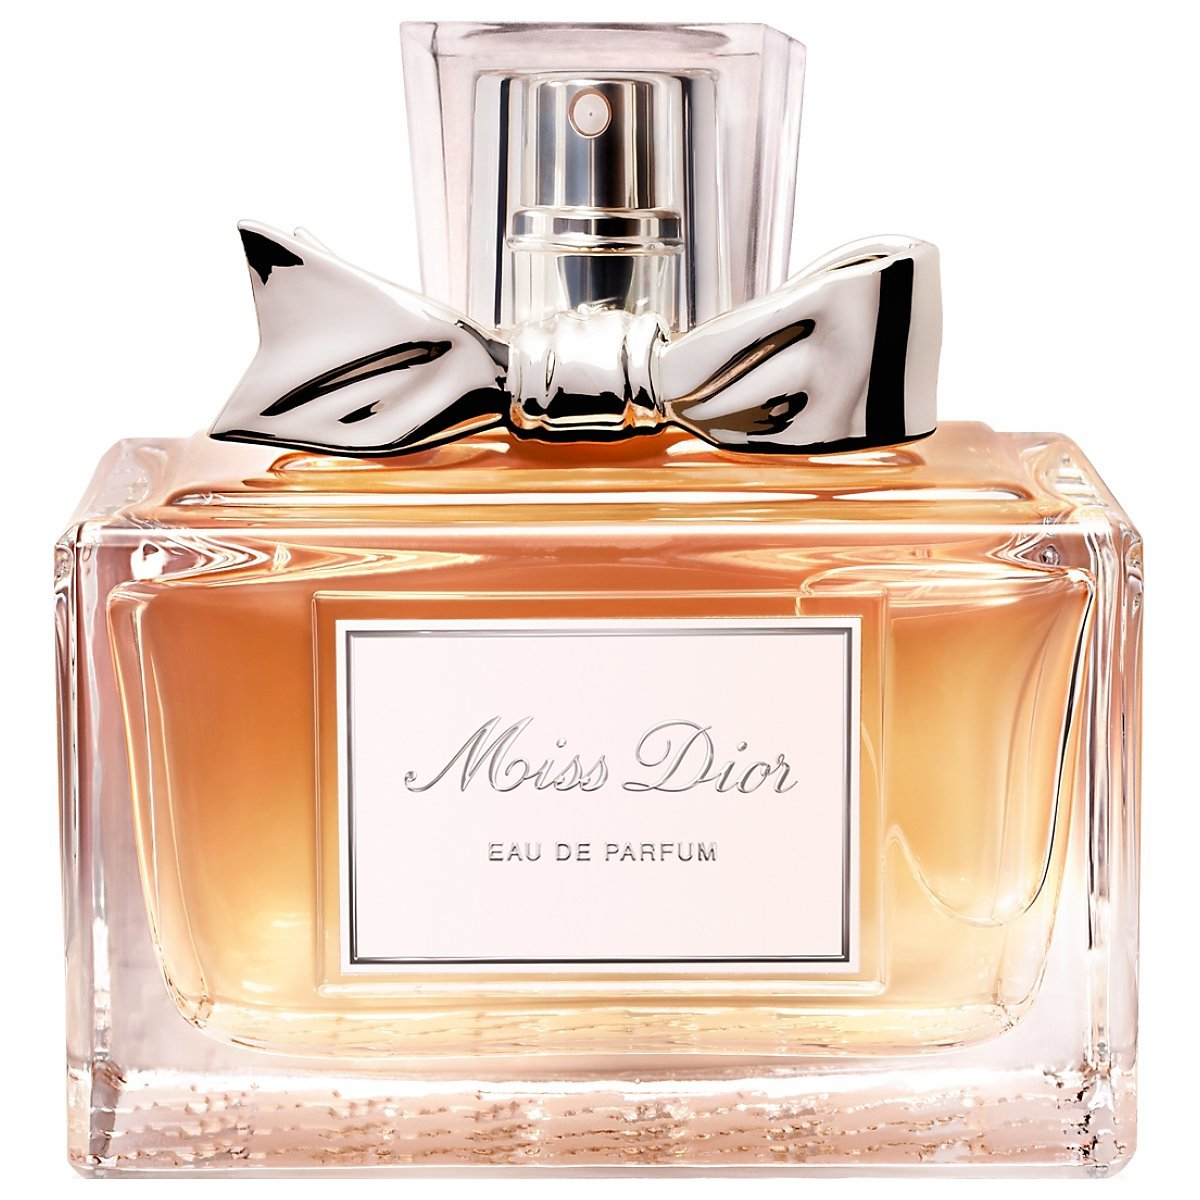 christian dior miss dior eau de parfum woda perfumowana. Black Bedroom Furniture Sets. Home Design Ideas